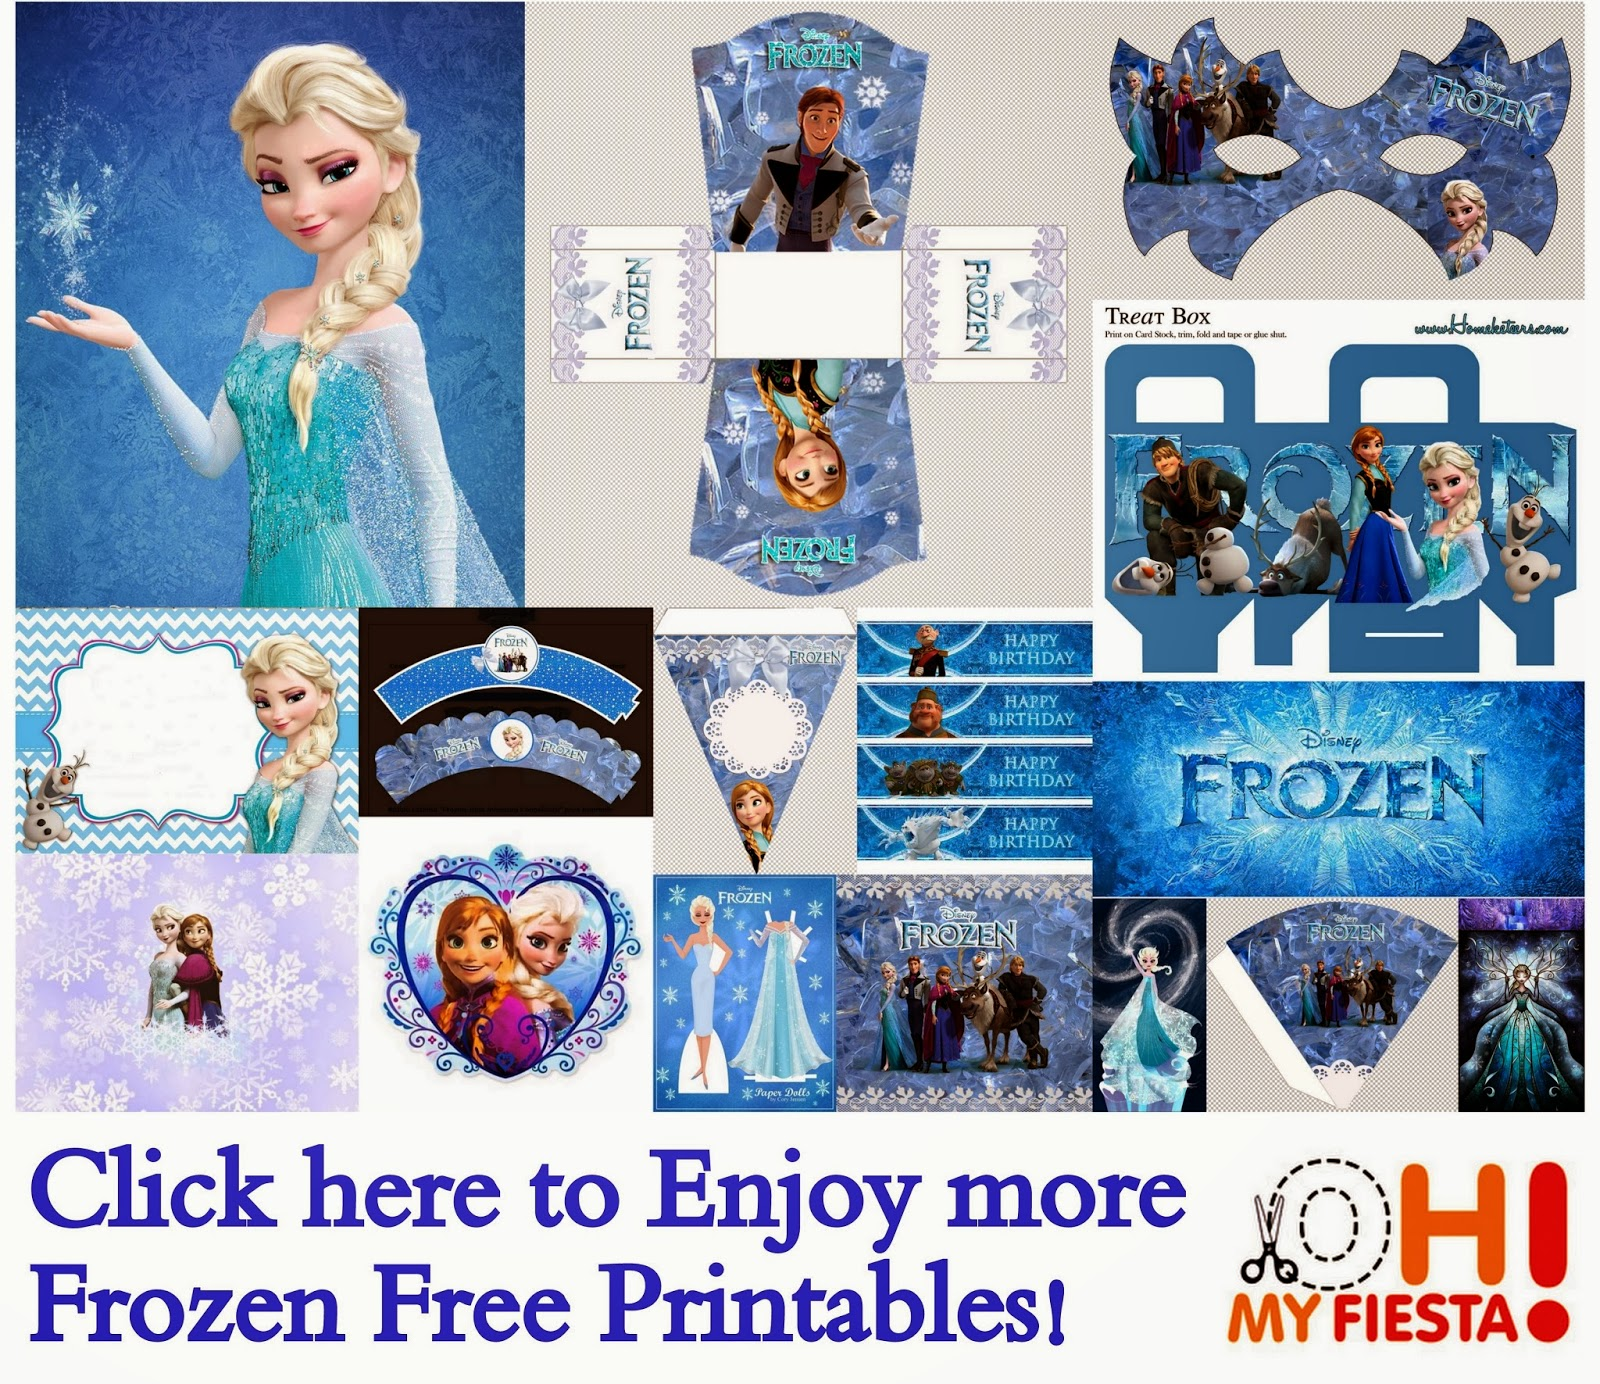 Enterprising image with regard to frozen free printable